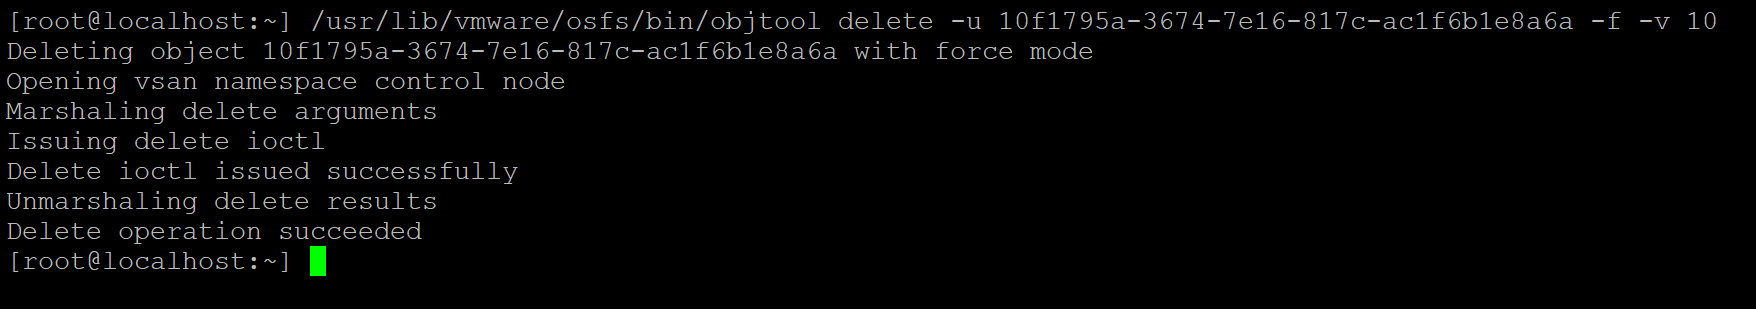 Deleting inaccessible objects from the node